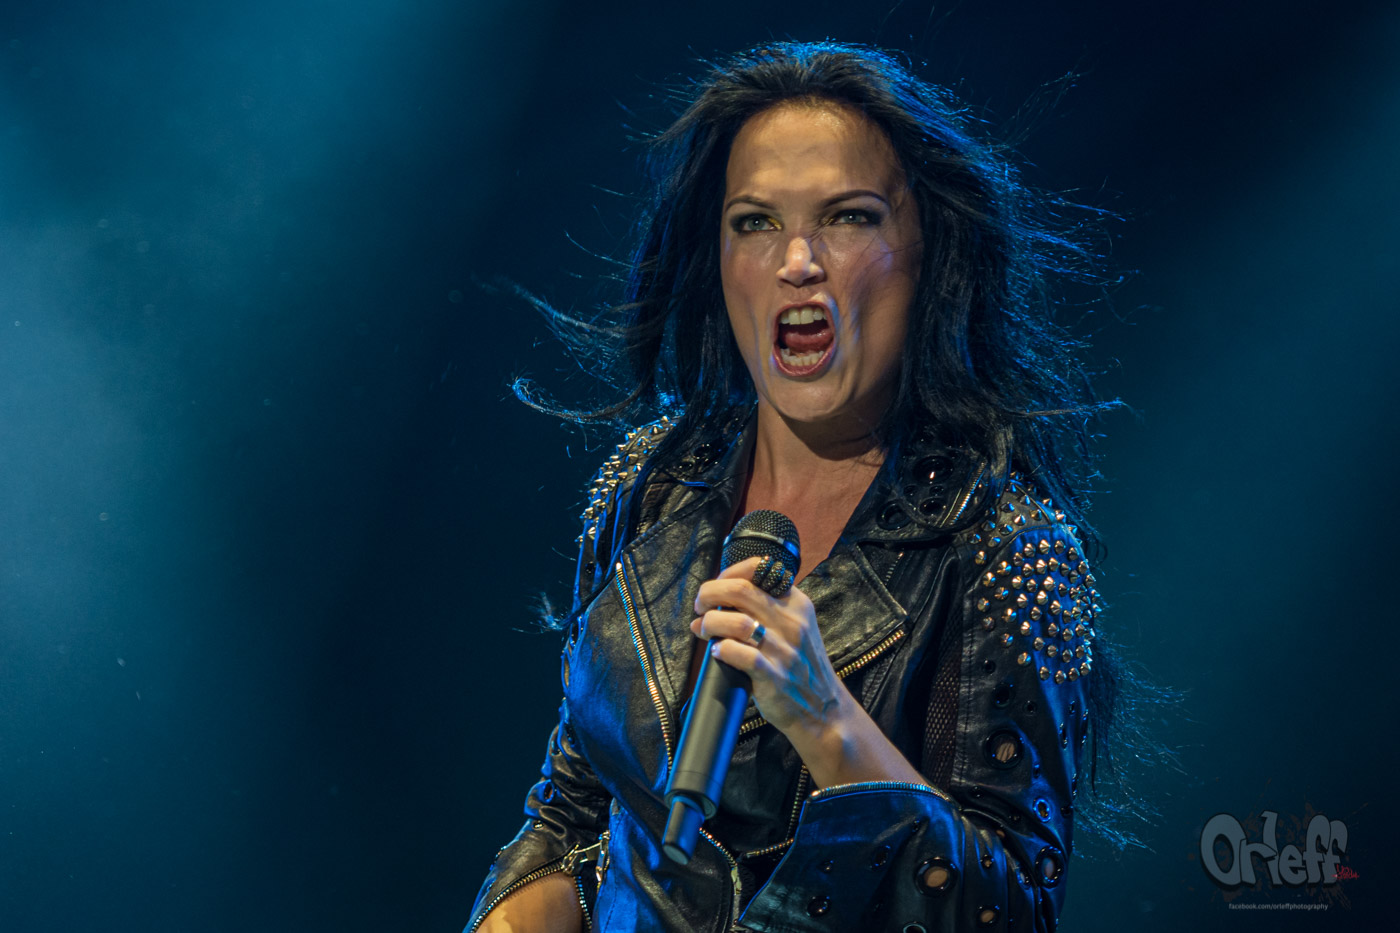 Tarja @ MetalDays Festival 2019